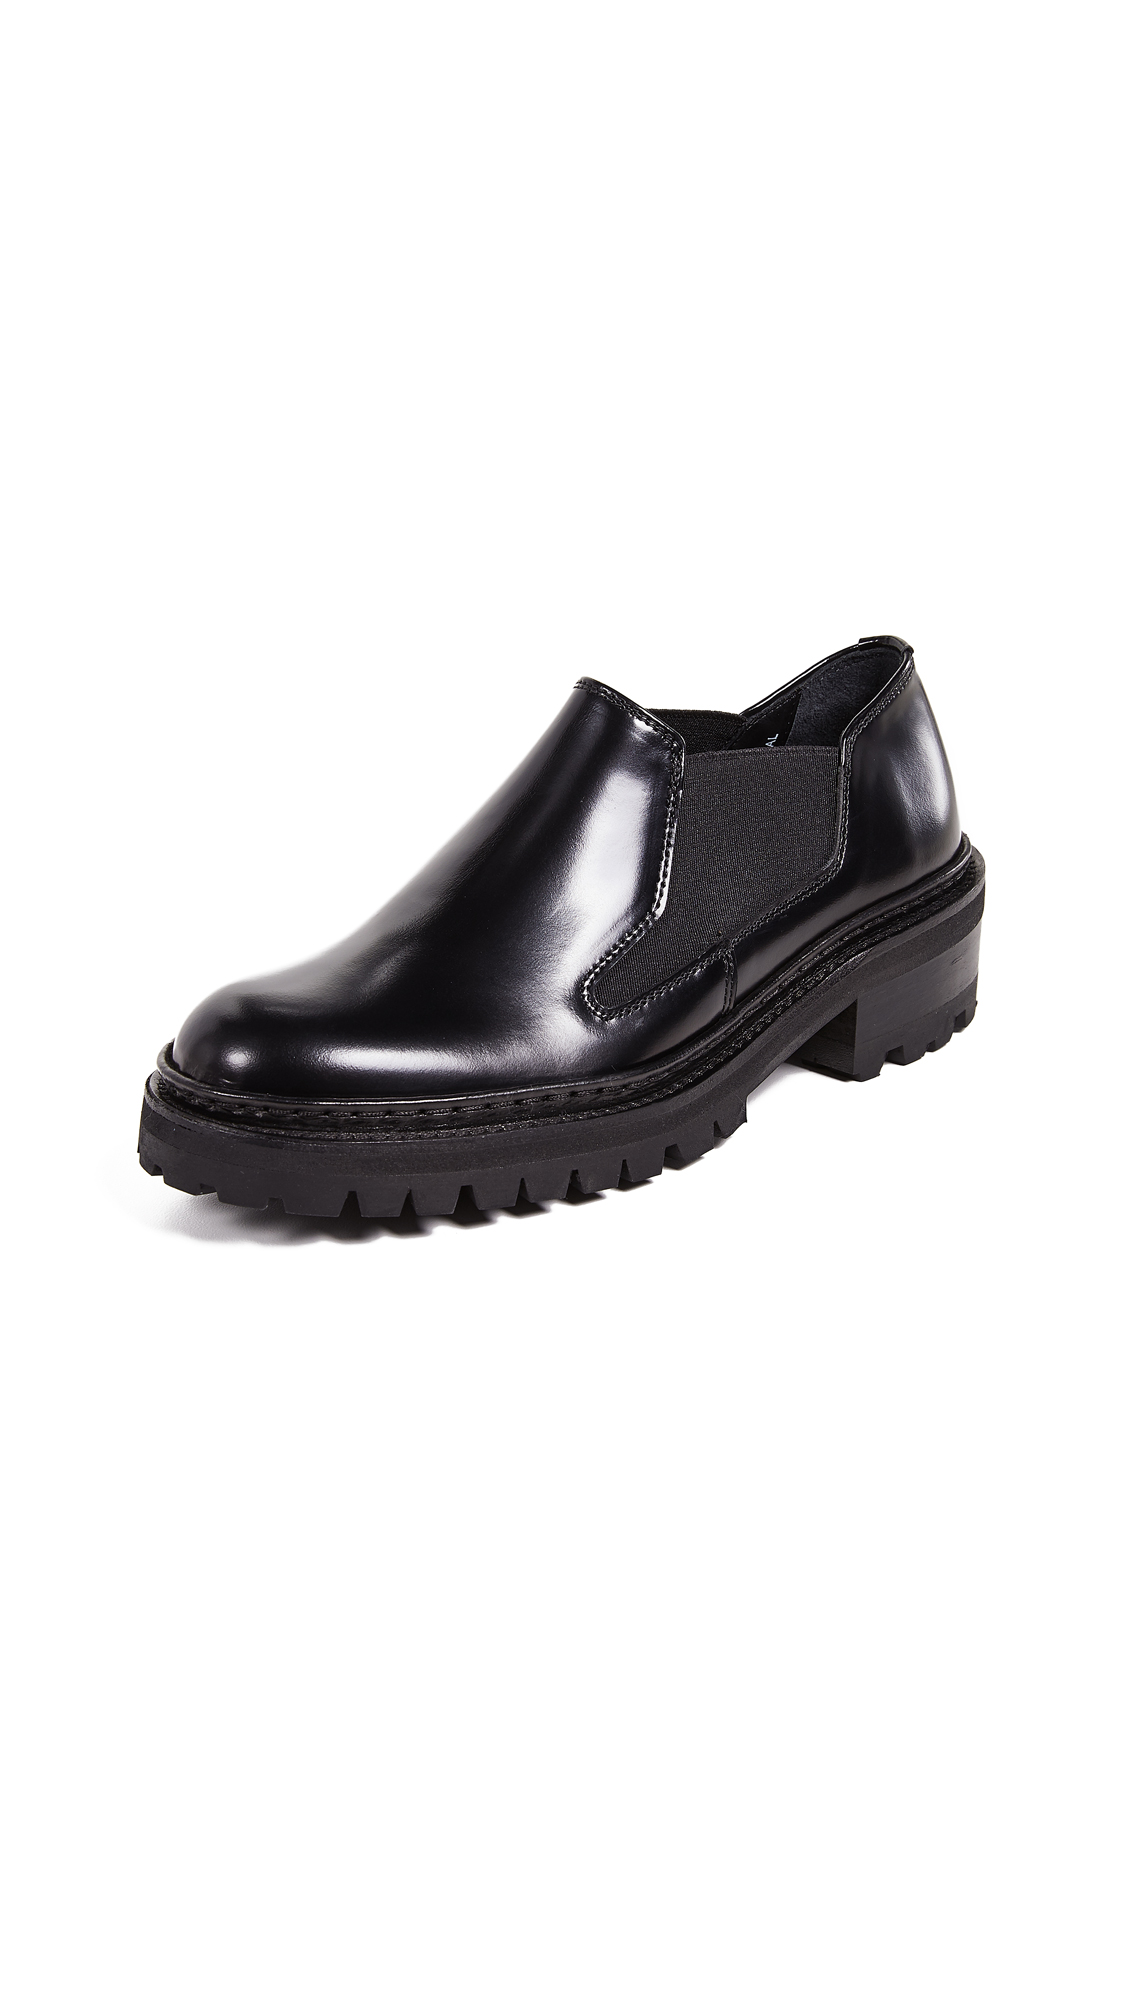 WANT Les Essentiels Valdez Chelsea Booties - Black/Black